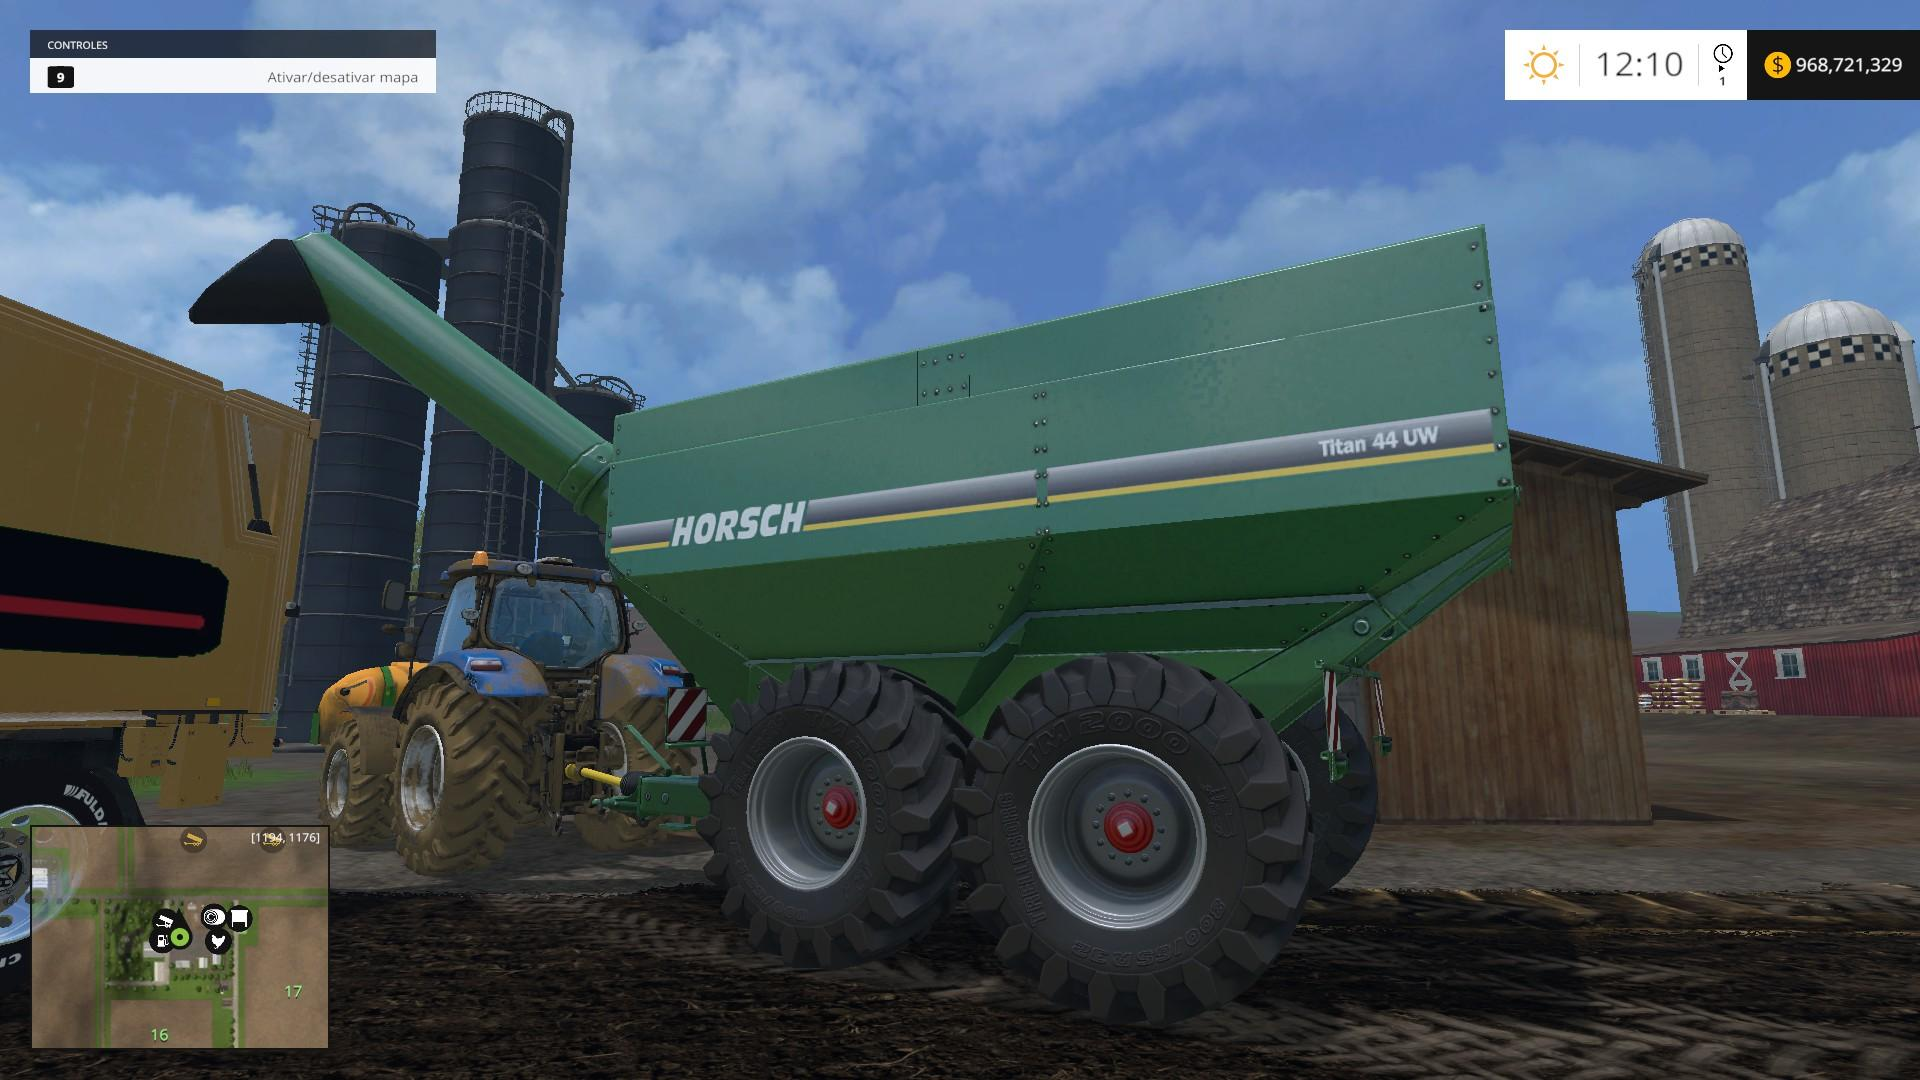 best farming simulator mods horsch titan 34